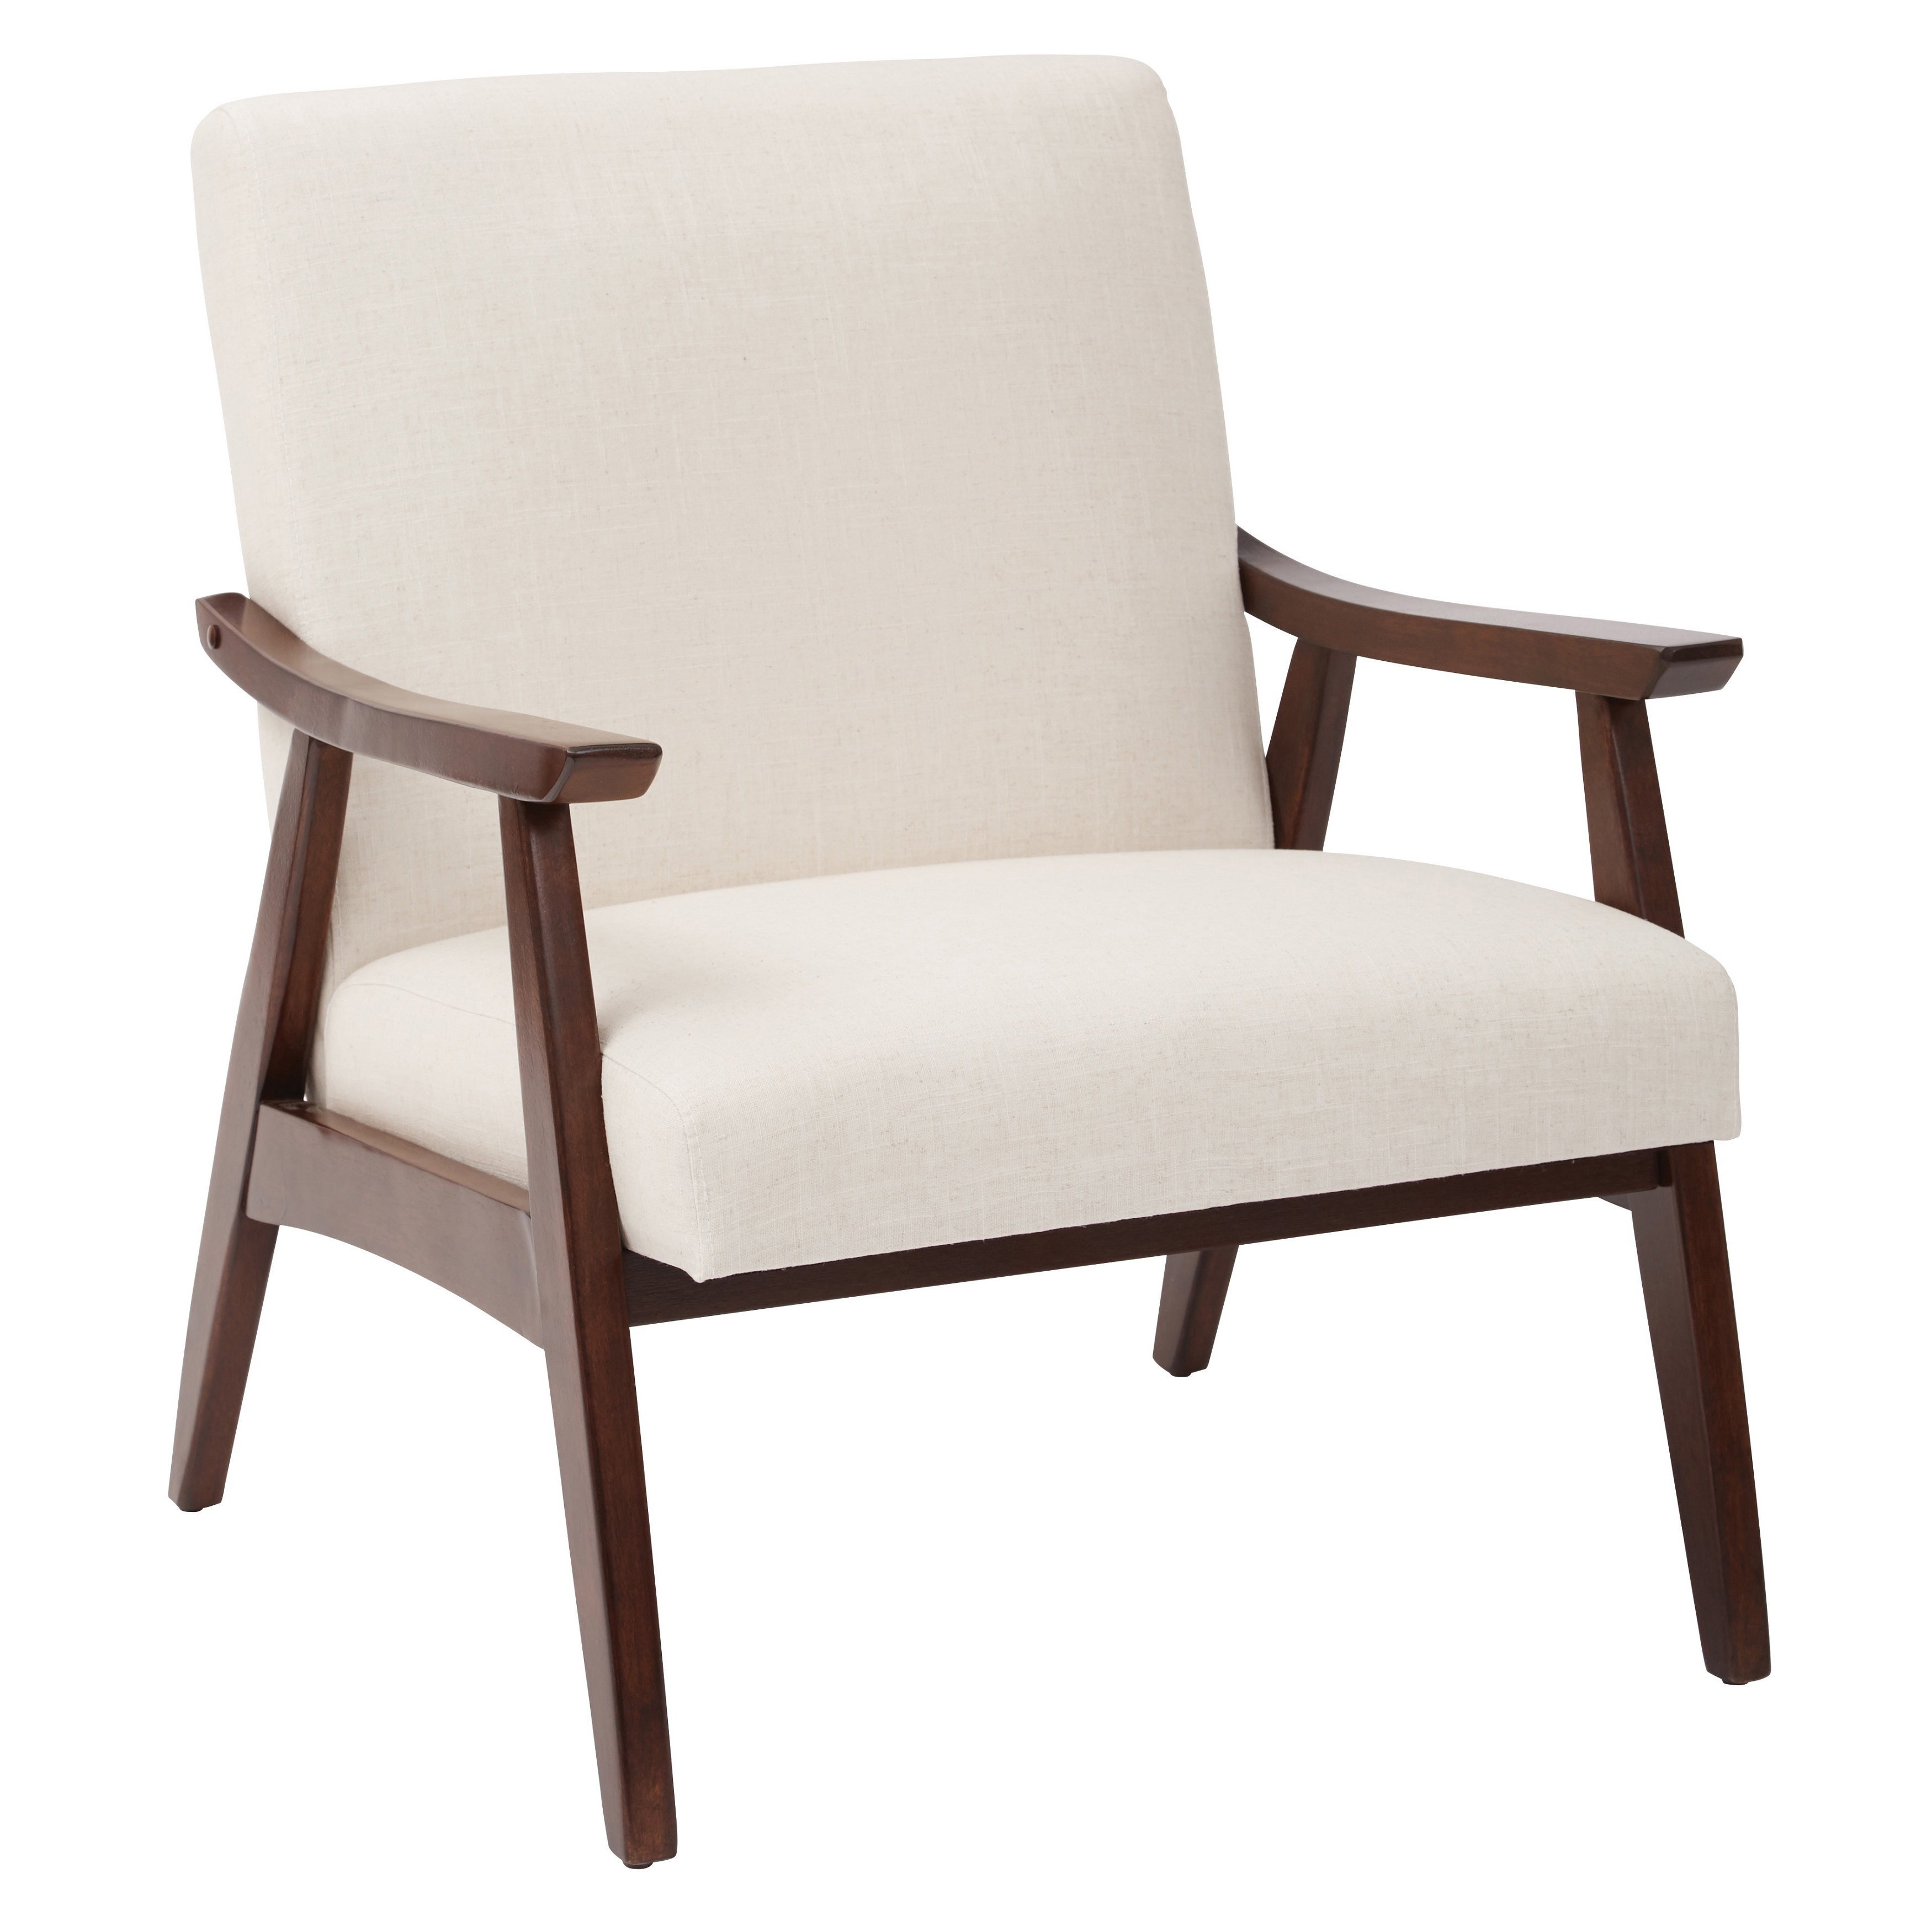 Accent Chairs, White Living Room Furniture For Less | Overstock